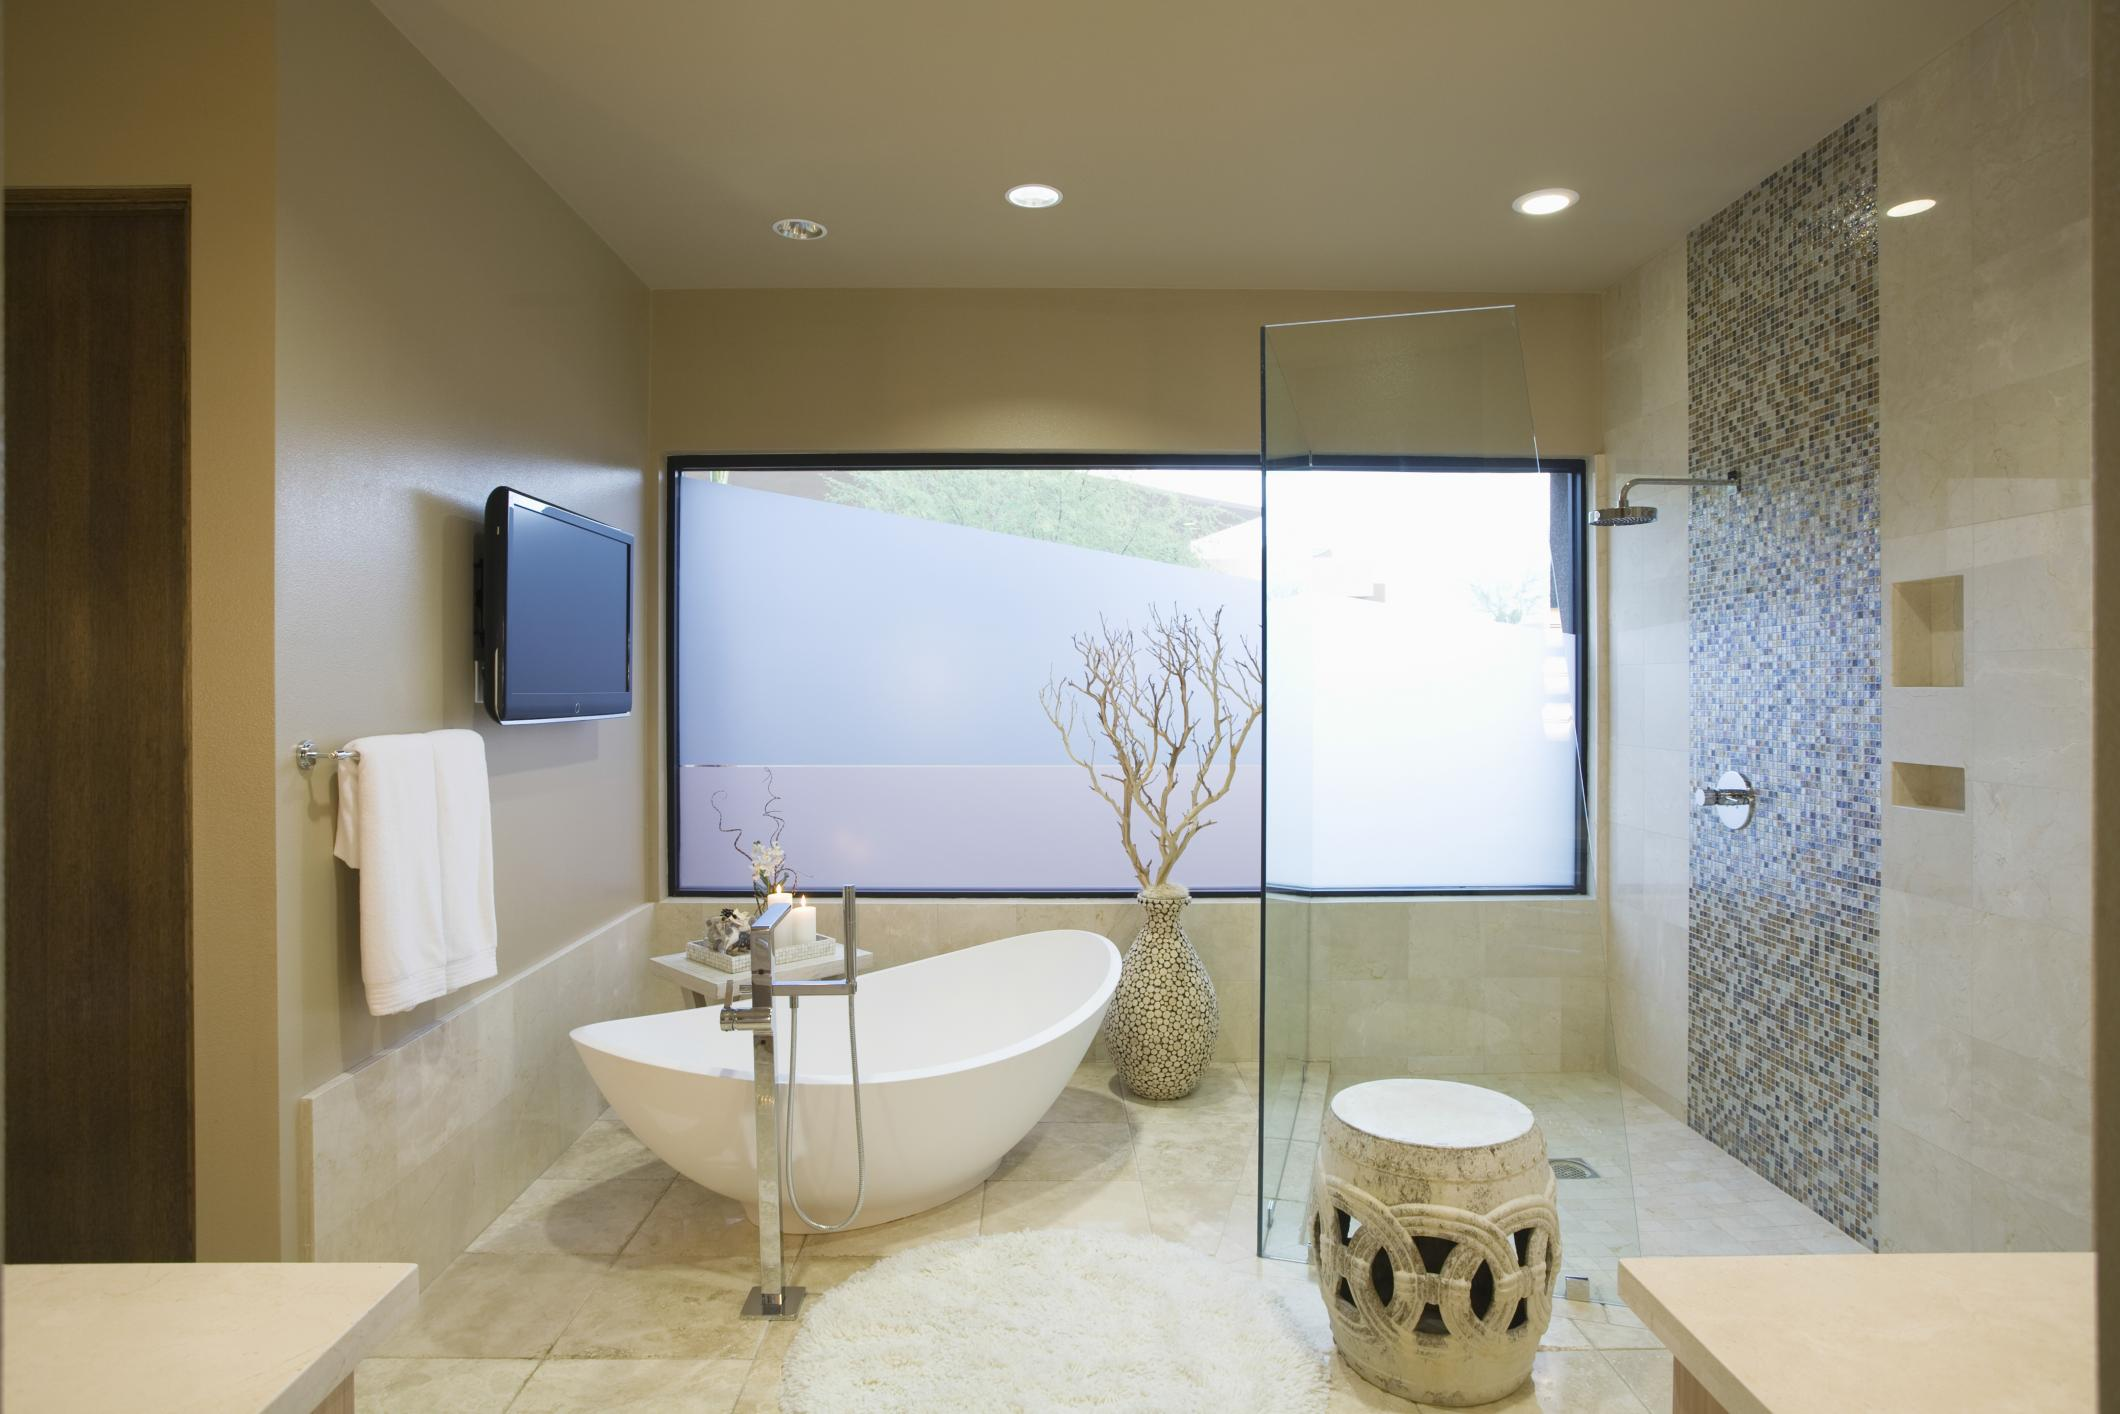 Concord Home Improvements and Remodeling - Bathroom Models 2